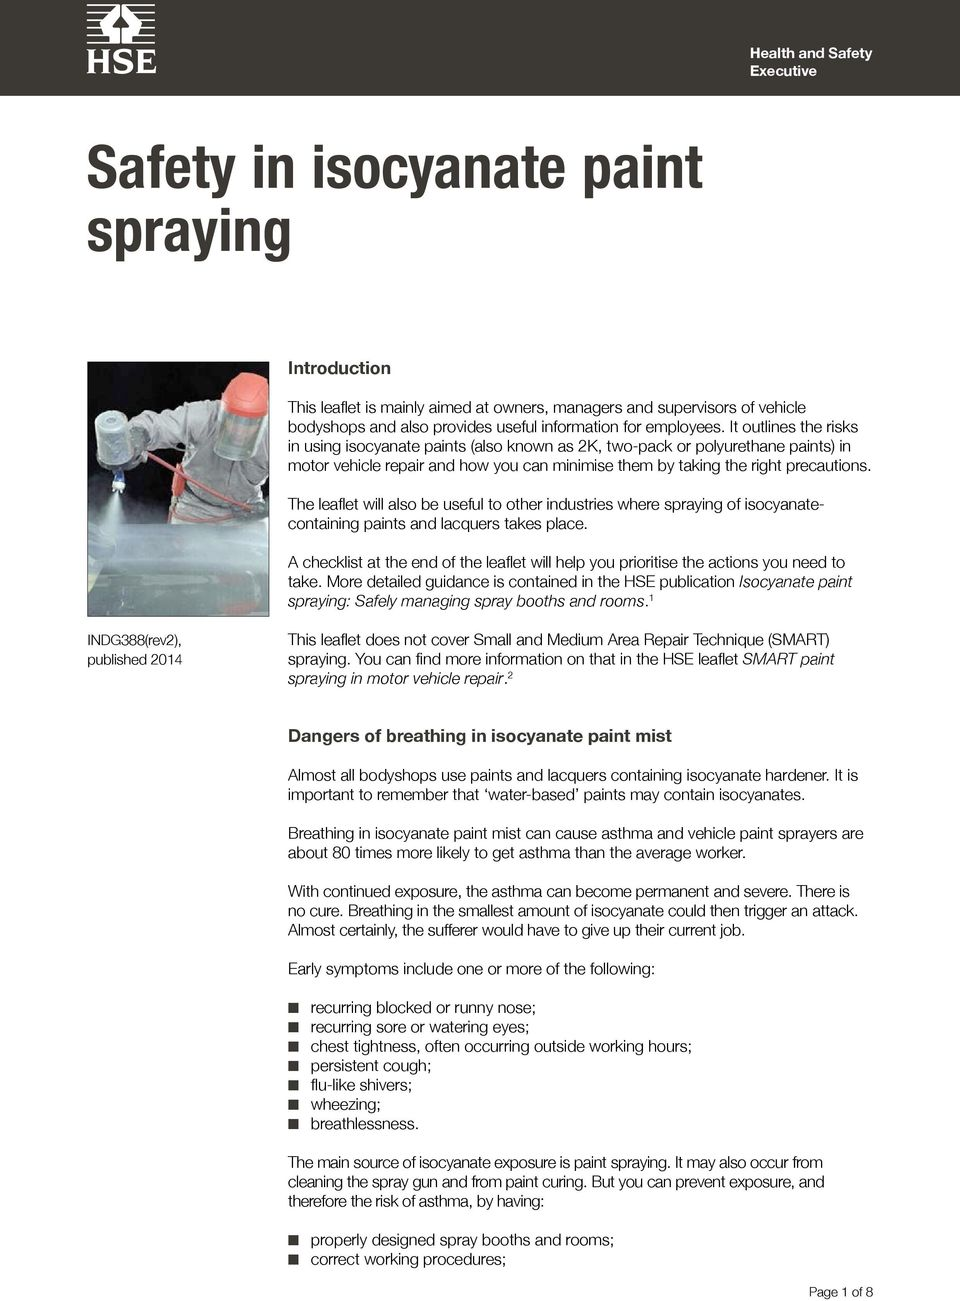 It outlines the risks in using isocyanate paints (also known as 2K, two-pack or polyurethane paints) in motor vehicle repair and how you can minimise them by taking the right precautions.